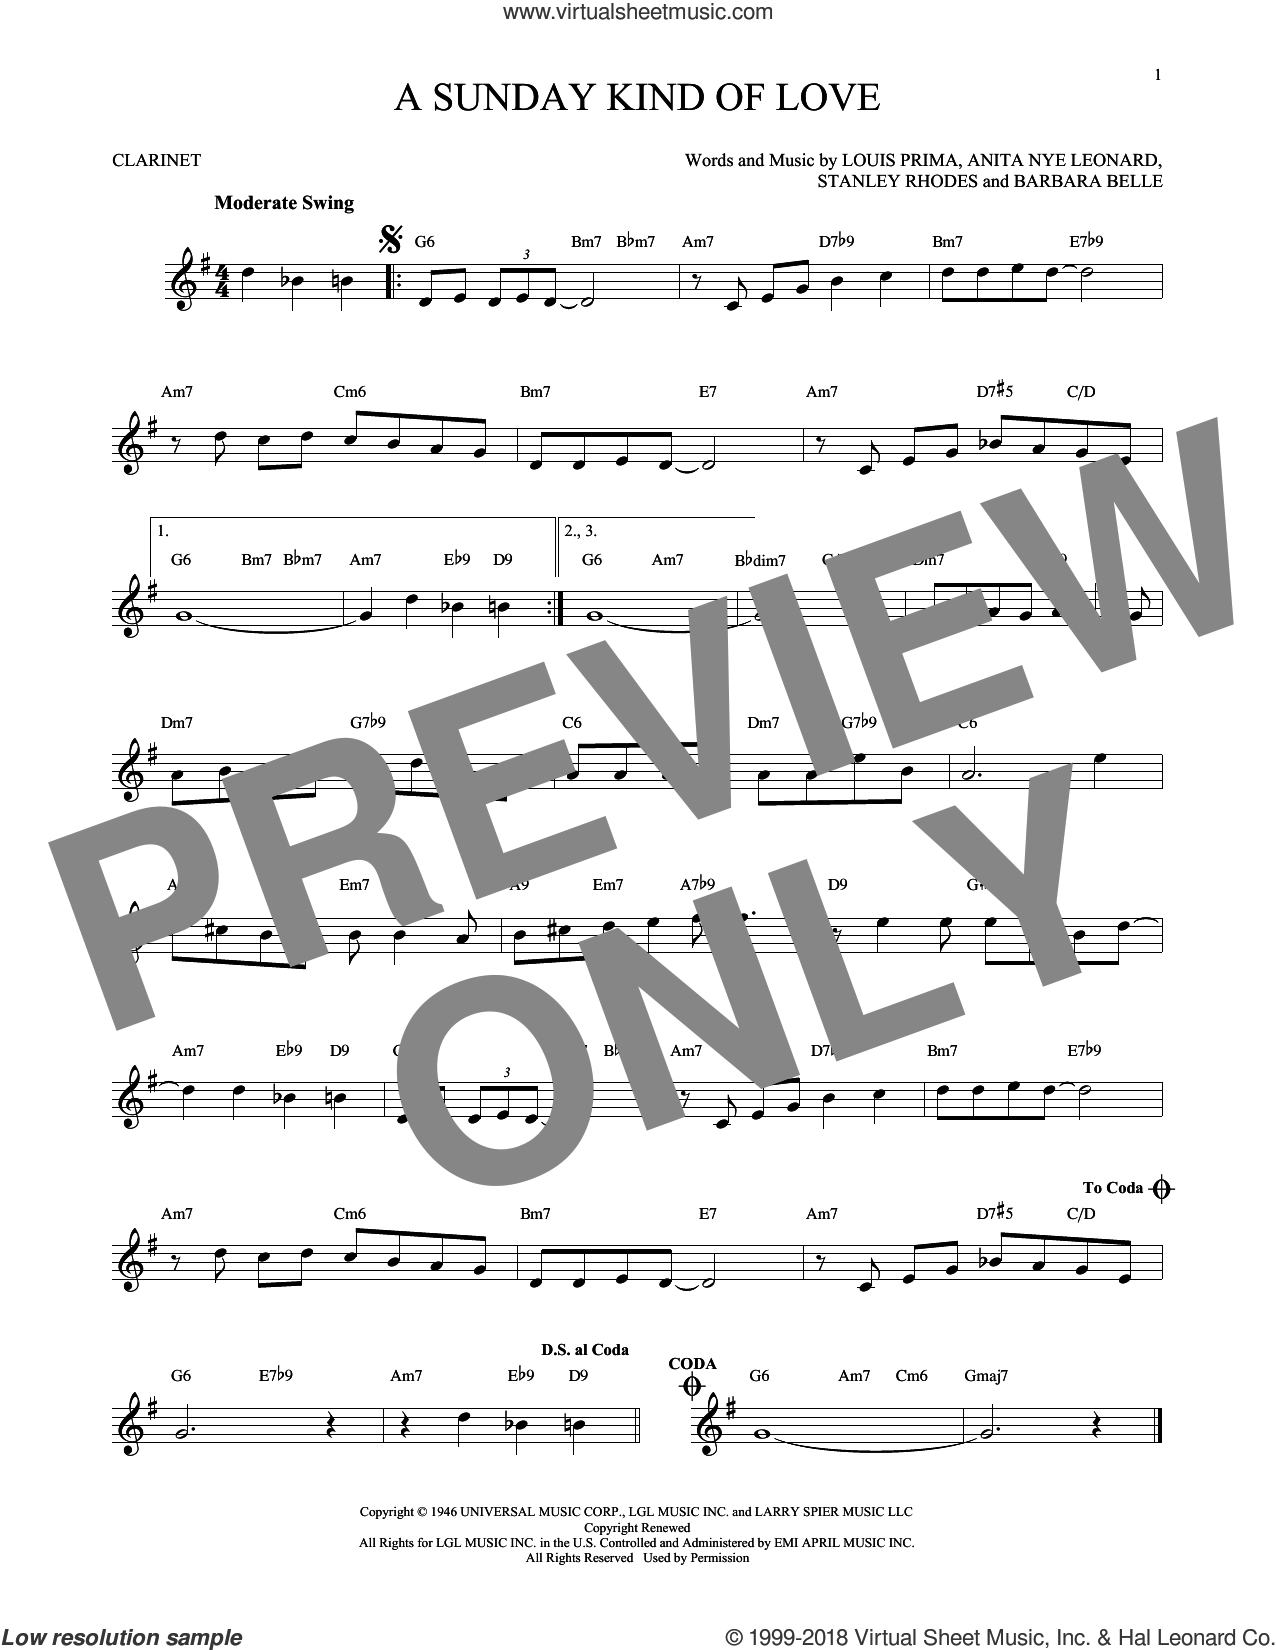 A Sunday Kind Of Love sheet music for clarinet solo by Etta James, Reba McEntire, Anita Nye Leonard, Barbara Belle, Louis Prima and Stanley Rhodes, intermediate skill level